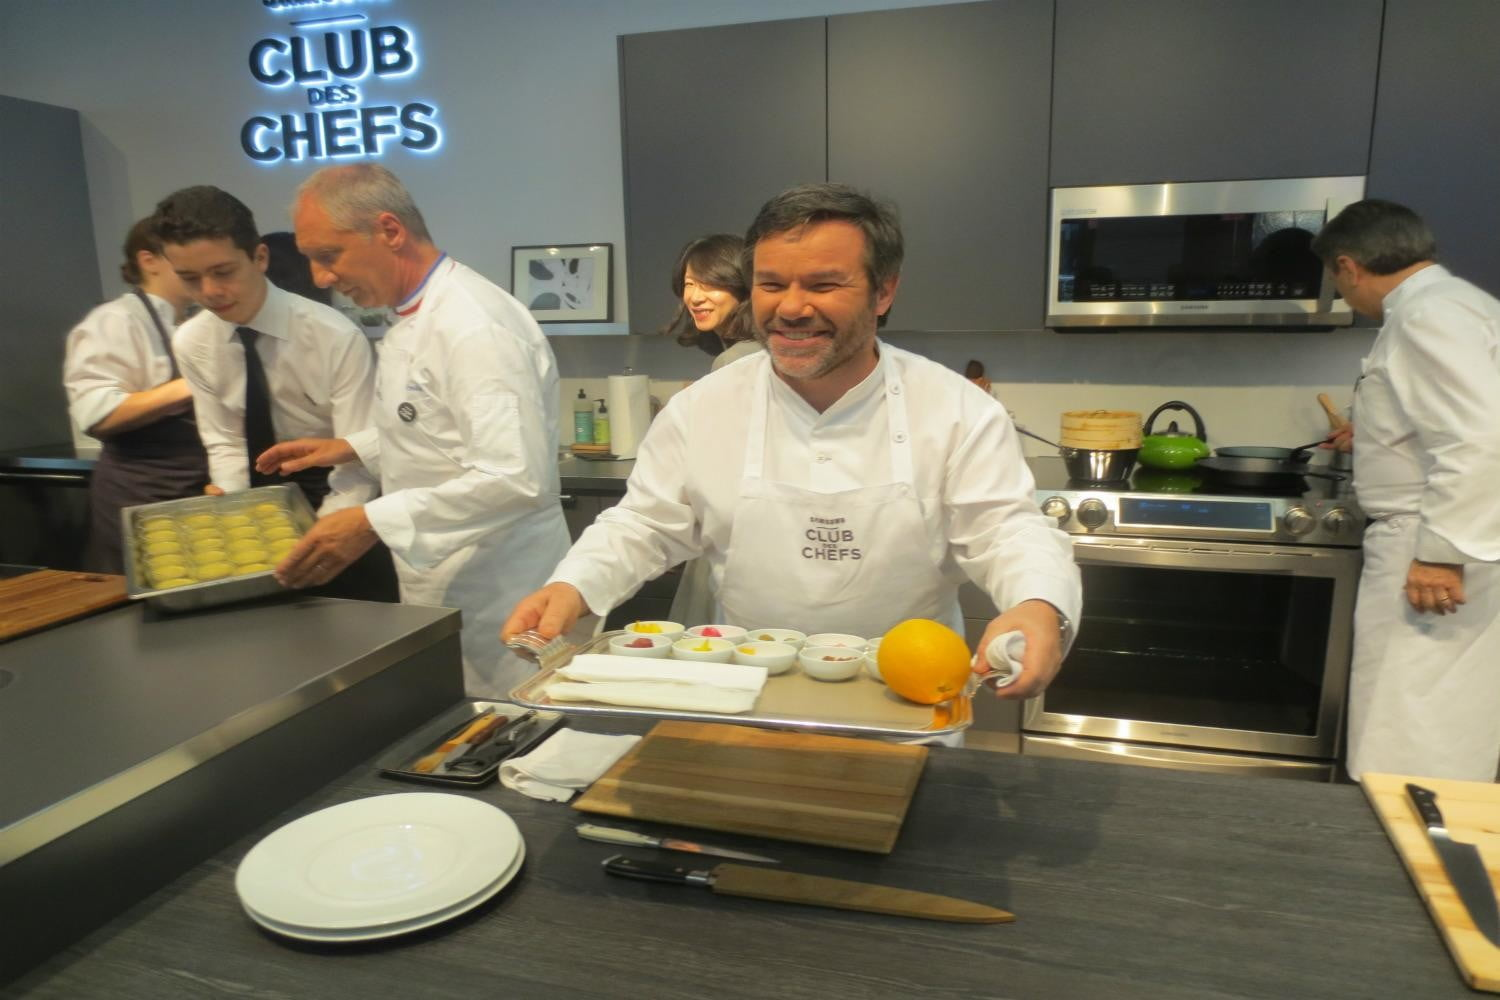 samsung teams top notch chefs celebrate launch new home gear img 0755